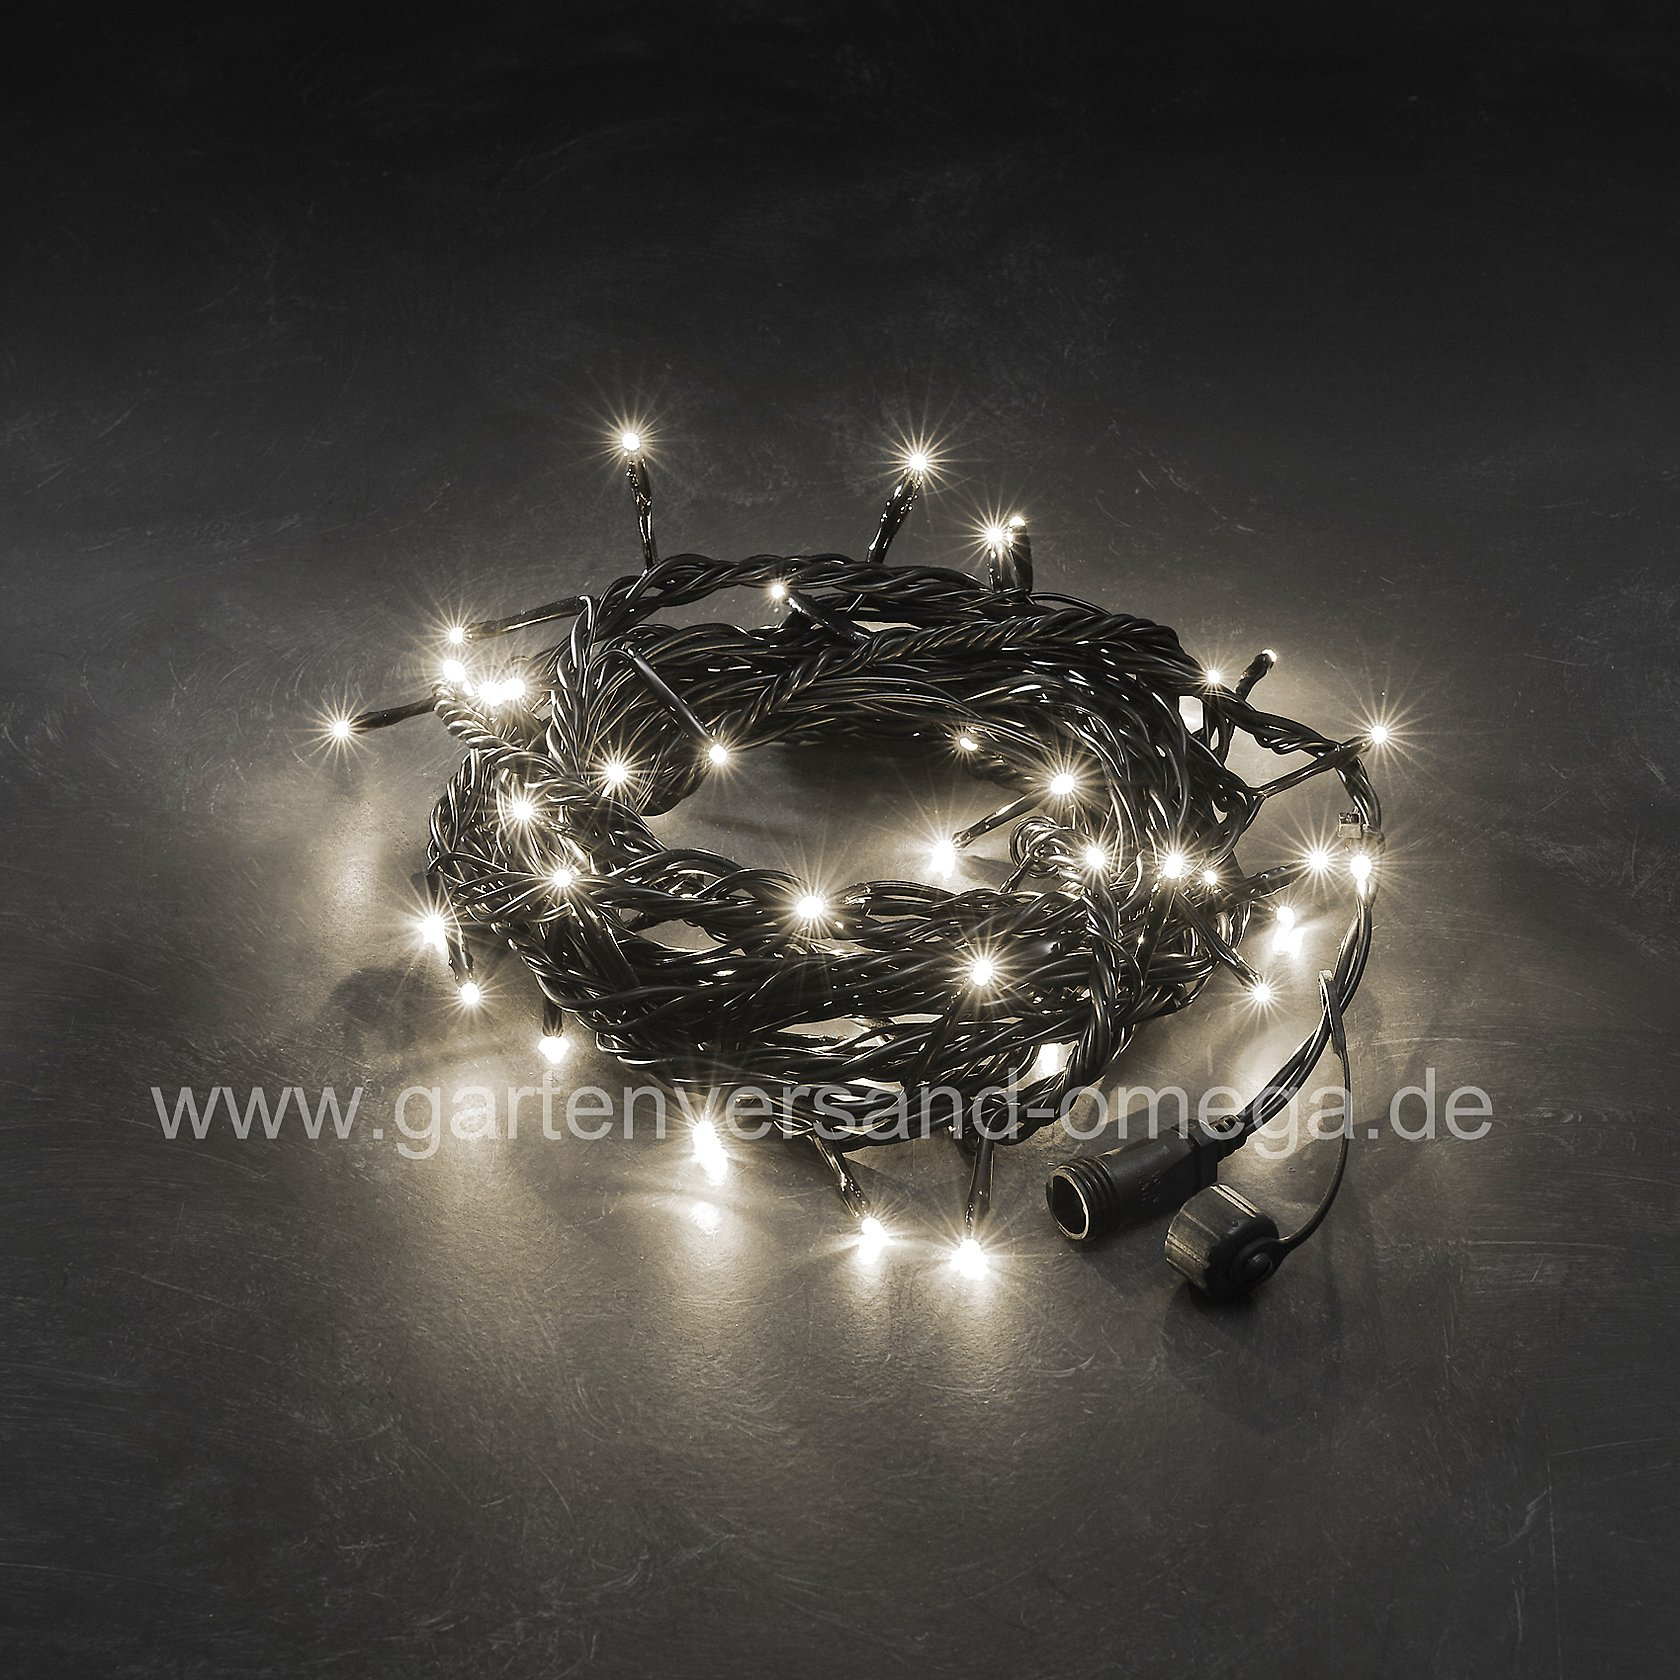 led lichtsystem soft erweiterung lichterkette led lichterkette lichterkette f r das. Black Bedroom Furniture Sets. Home Design Ideas